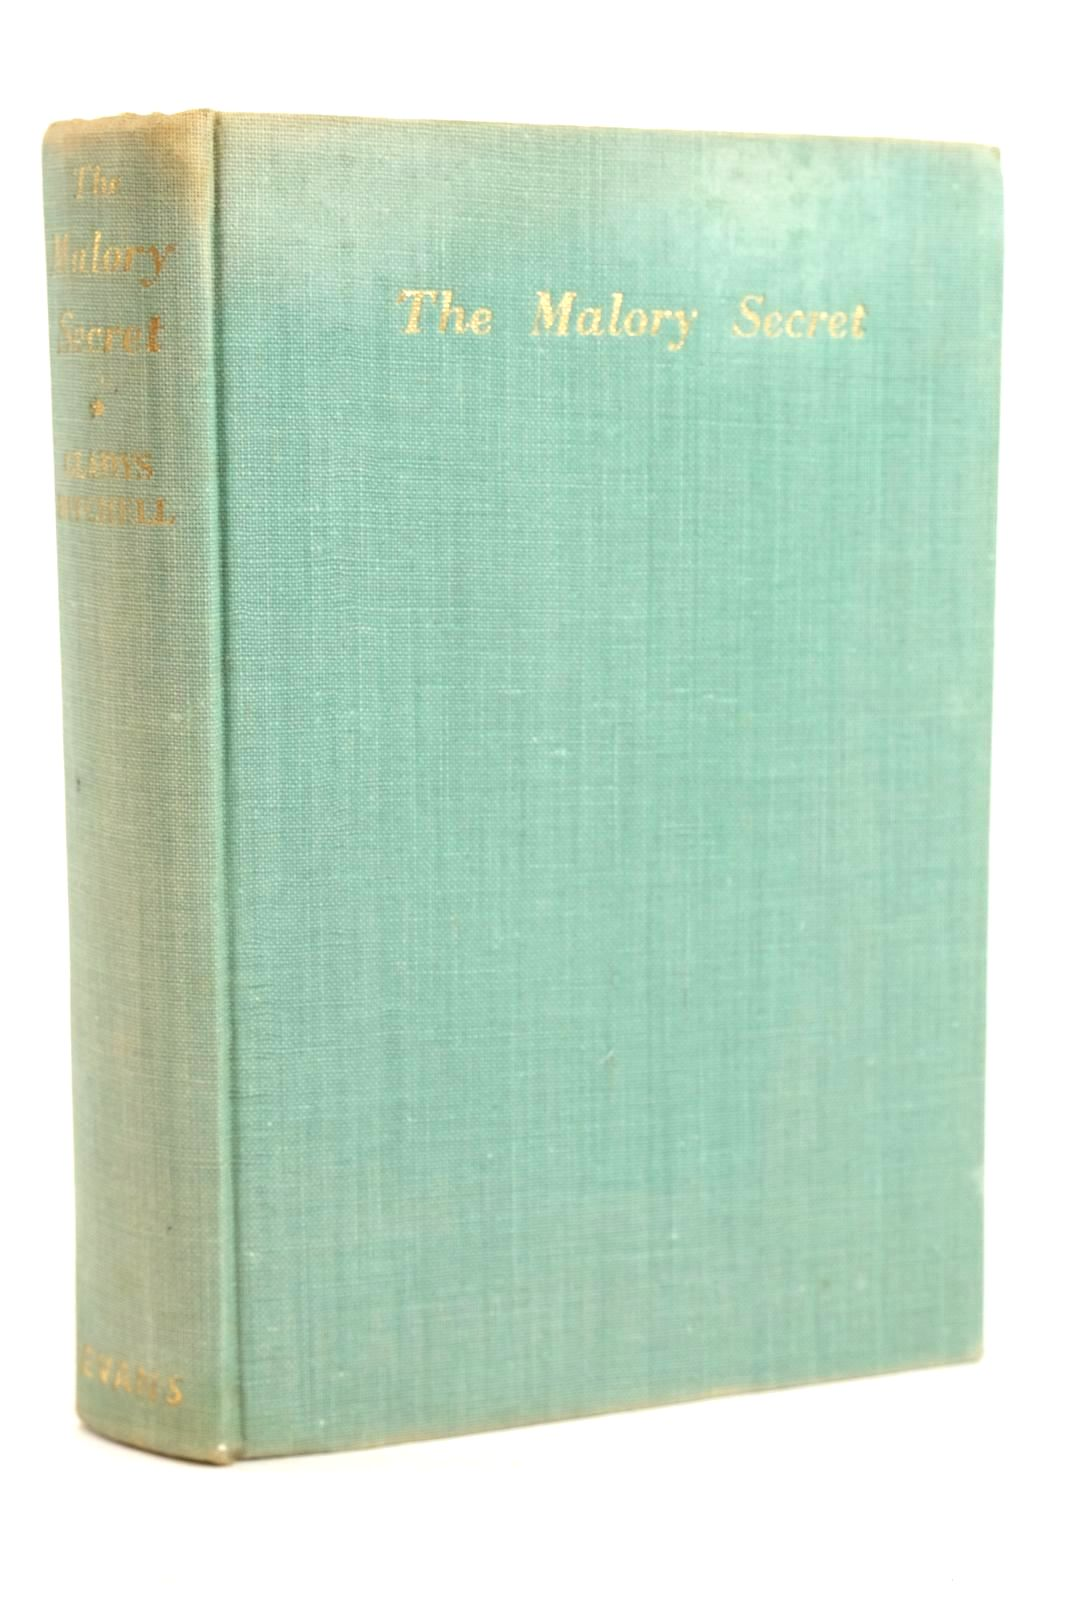 Photo of THE MALORY SECRET written by Mitchell, Gladys illustrated by Bush, Alice published by Evans Brothers Limited (STOCK CODE: 1320101)  for sale by Stella & Rose's Books